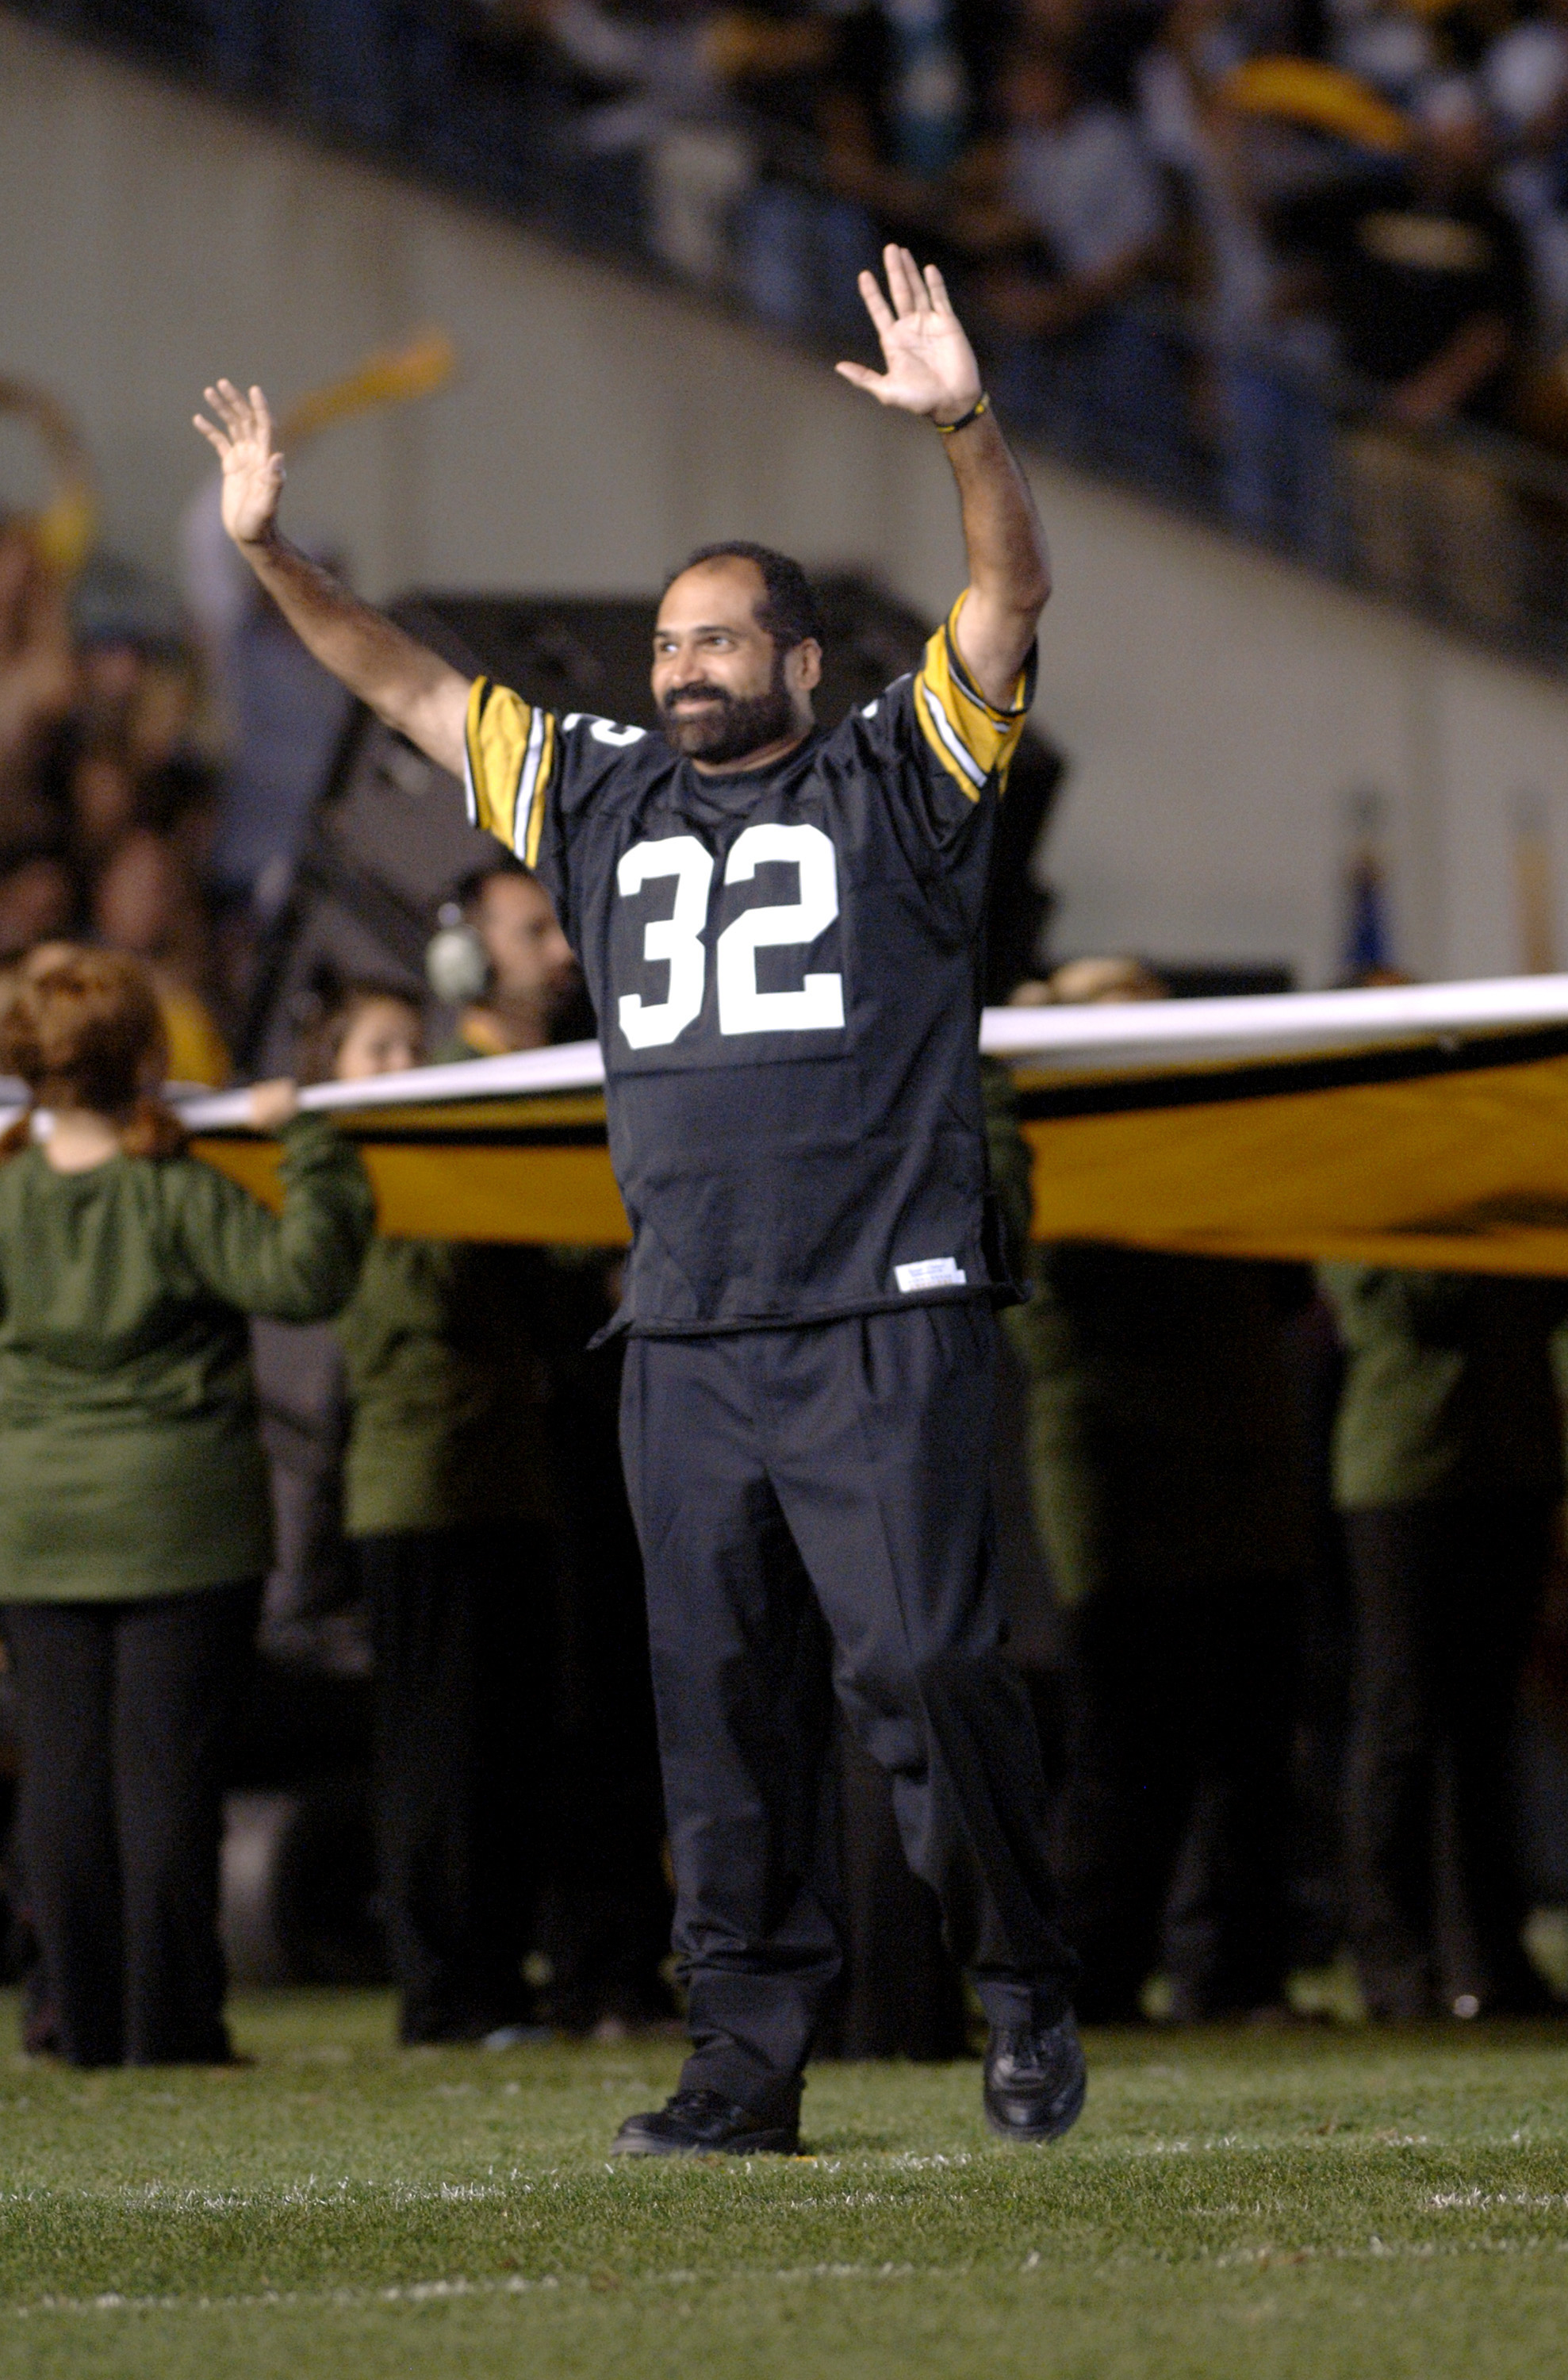 Retired Pittsburgh Steelers running back Franco Harris on the field before the NFL's 2006 opening game against the Miami Dolphins on September 7, 2006 at Heinz Field in Pittsburgh, Pennsylvania.  The Steelers won 28 - 17.  (Photo by Al Messerschmidt/Getty